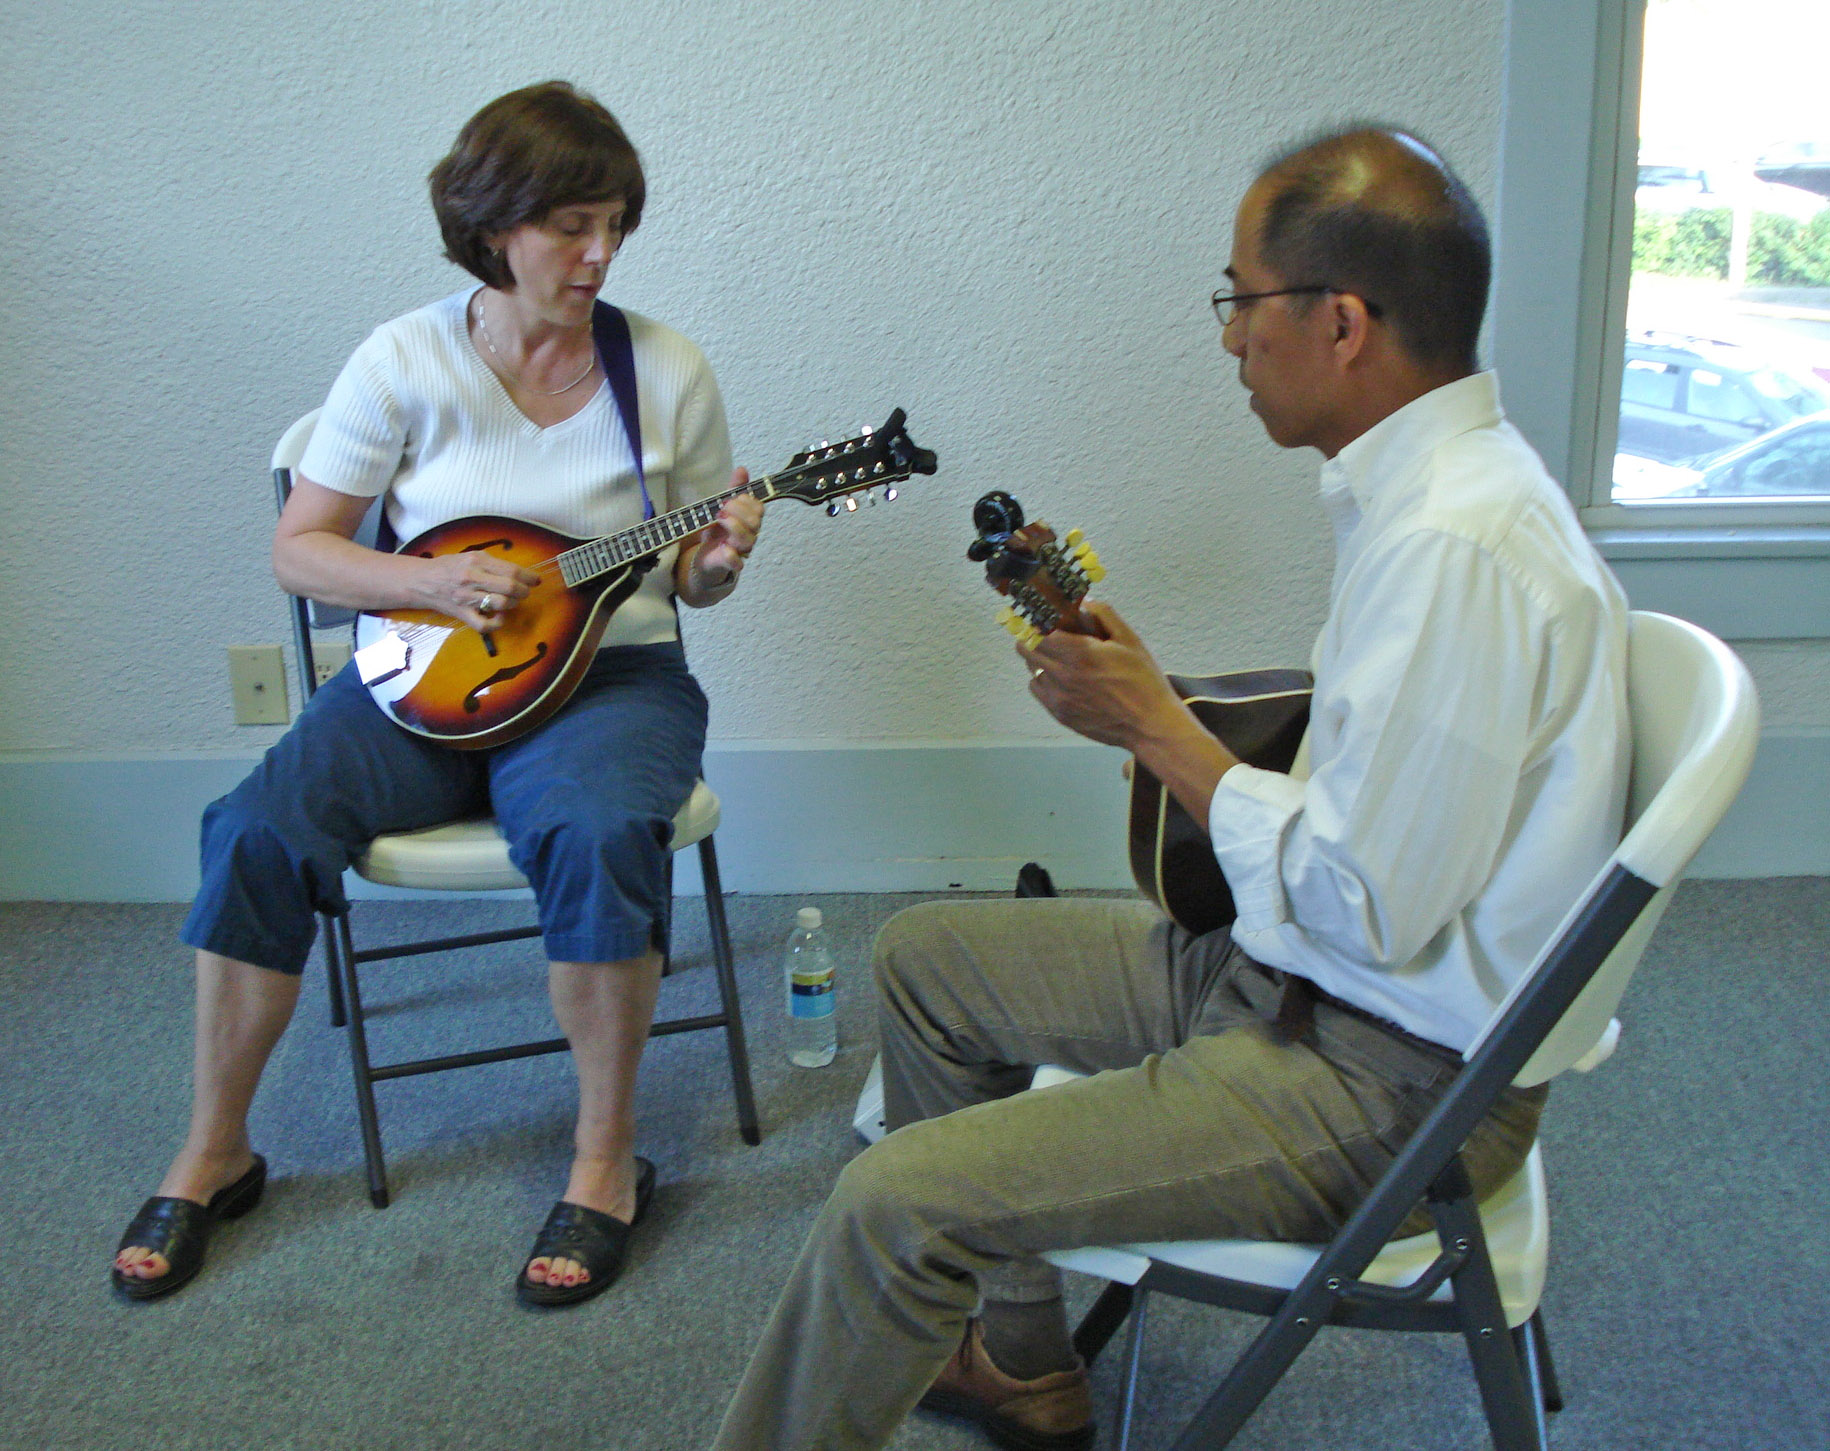 Wednesday mandolin class